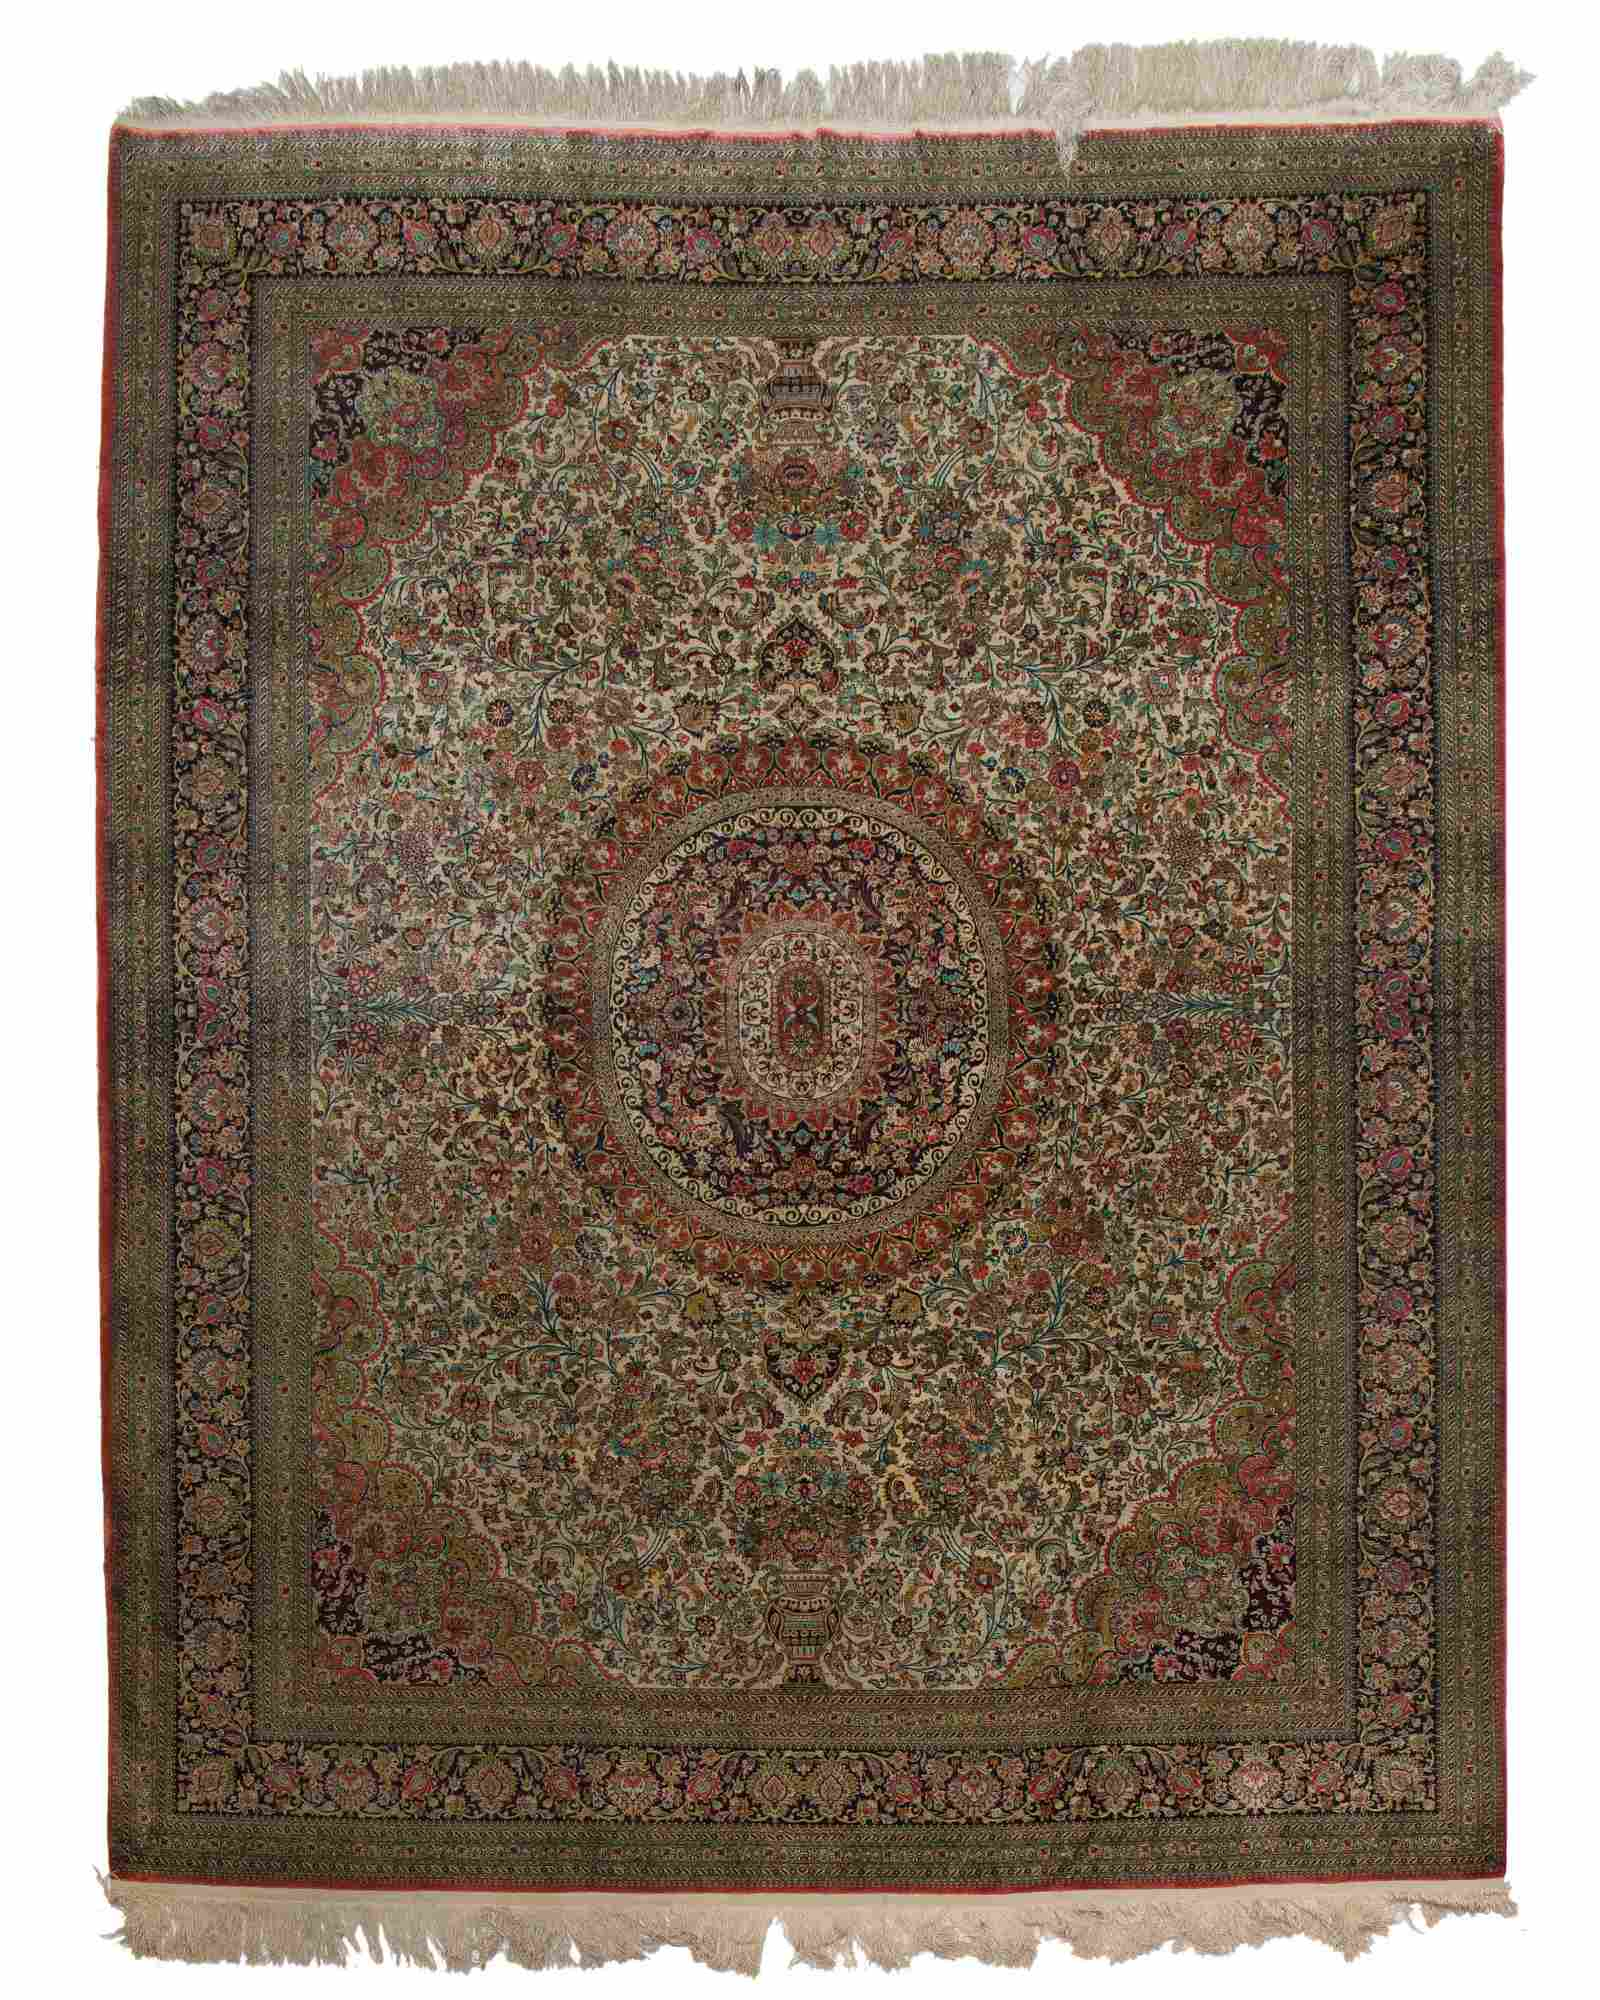 A large Persian area rug